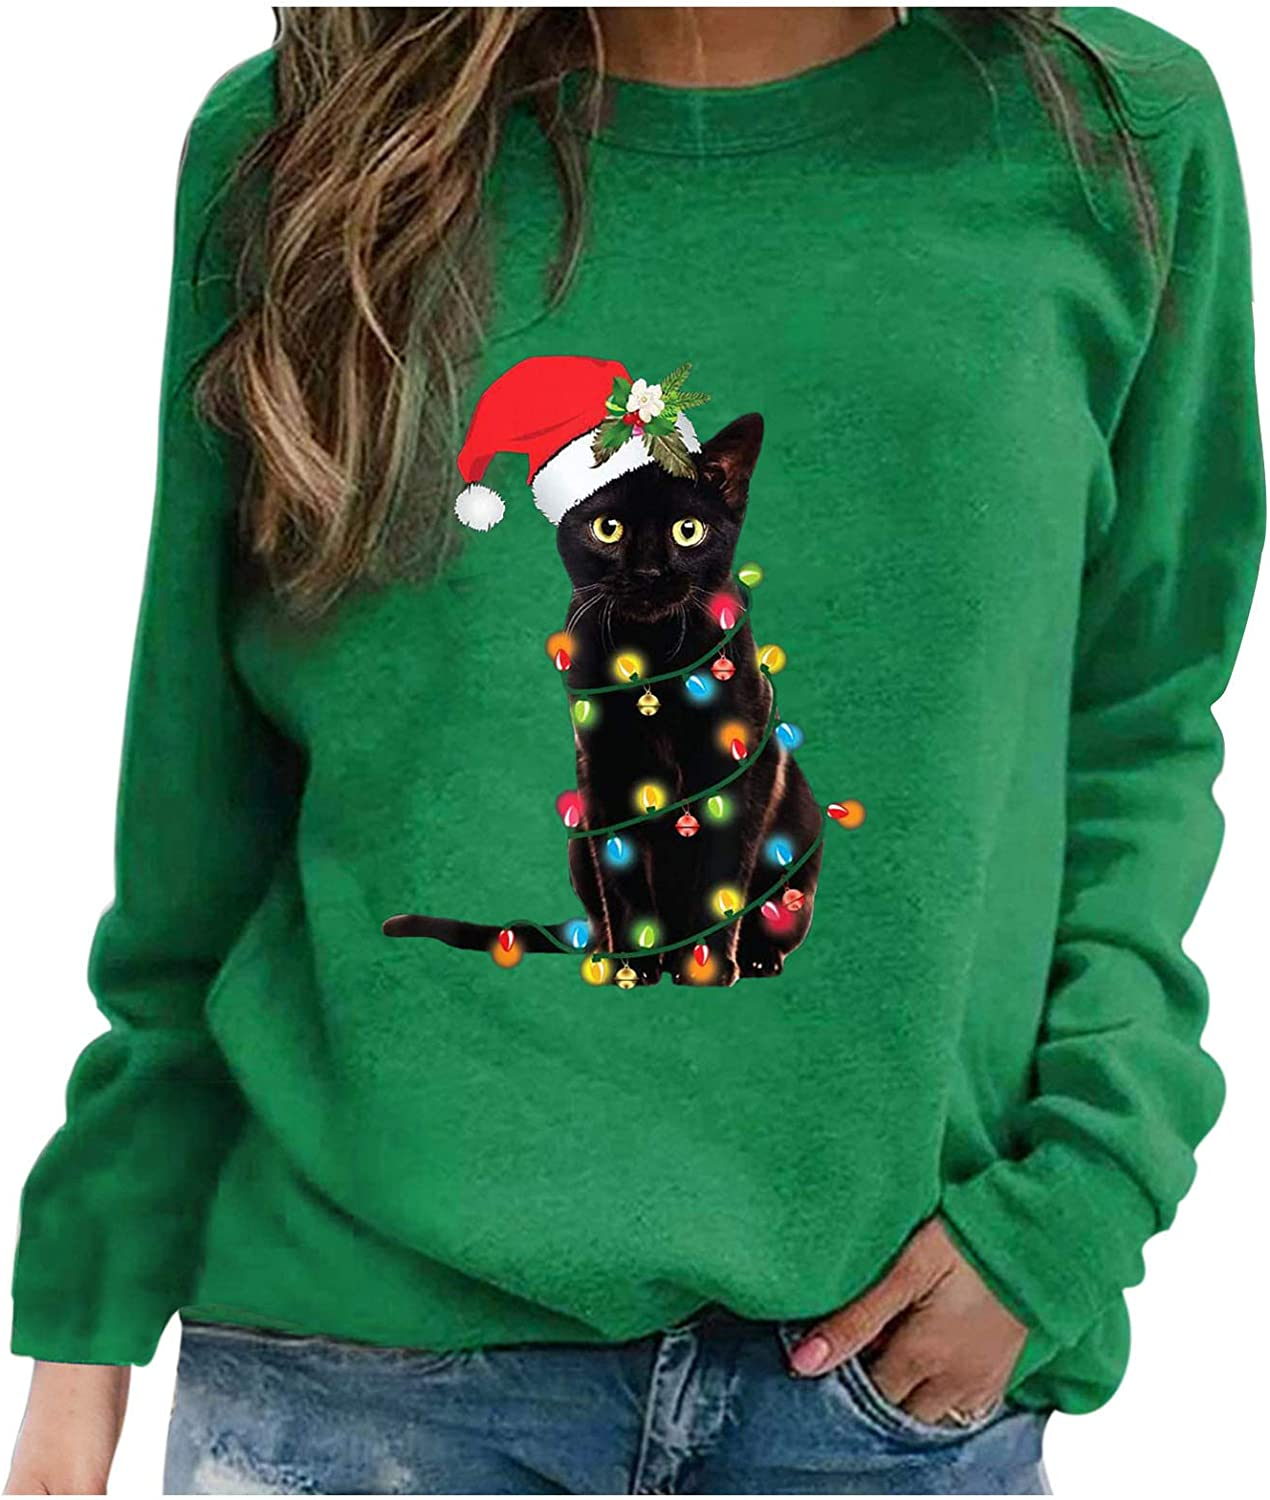 Quealent Christmas Sweatshirt for Women Fashion Funny Graphic Printed Long Sleeve Crew Neck Sweatshirt Pullover Tops